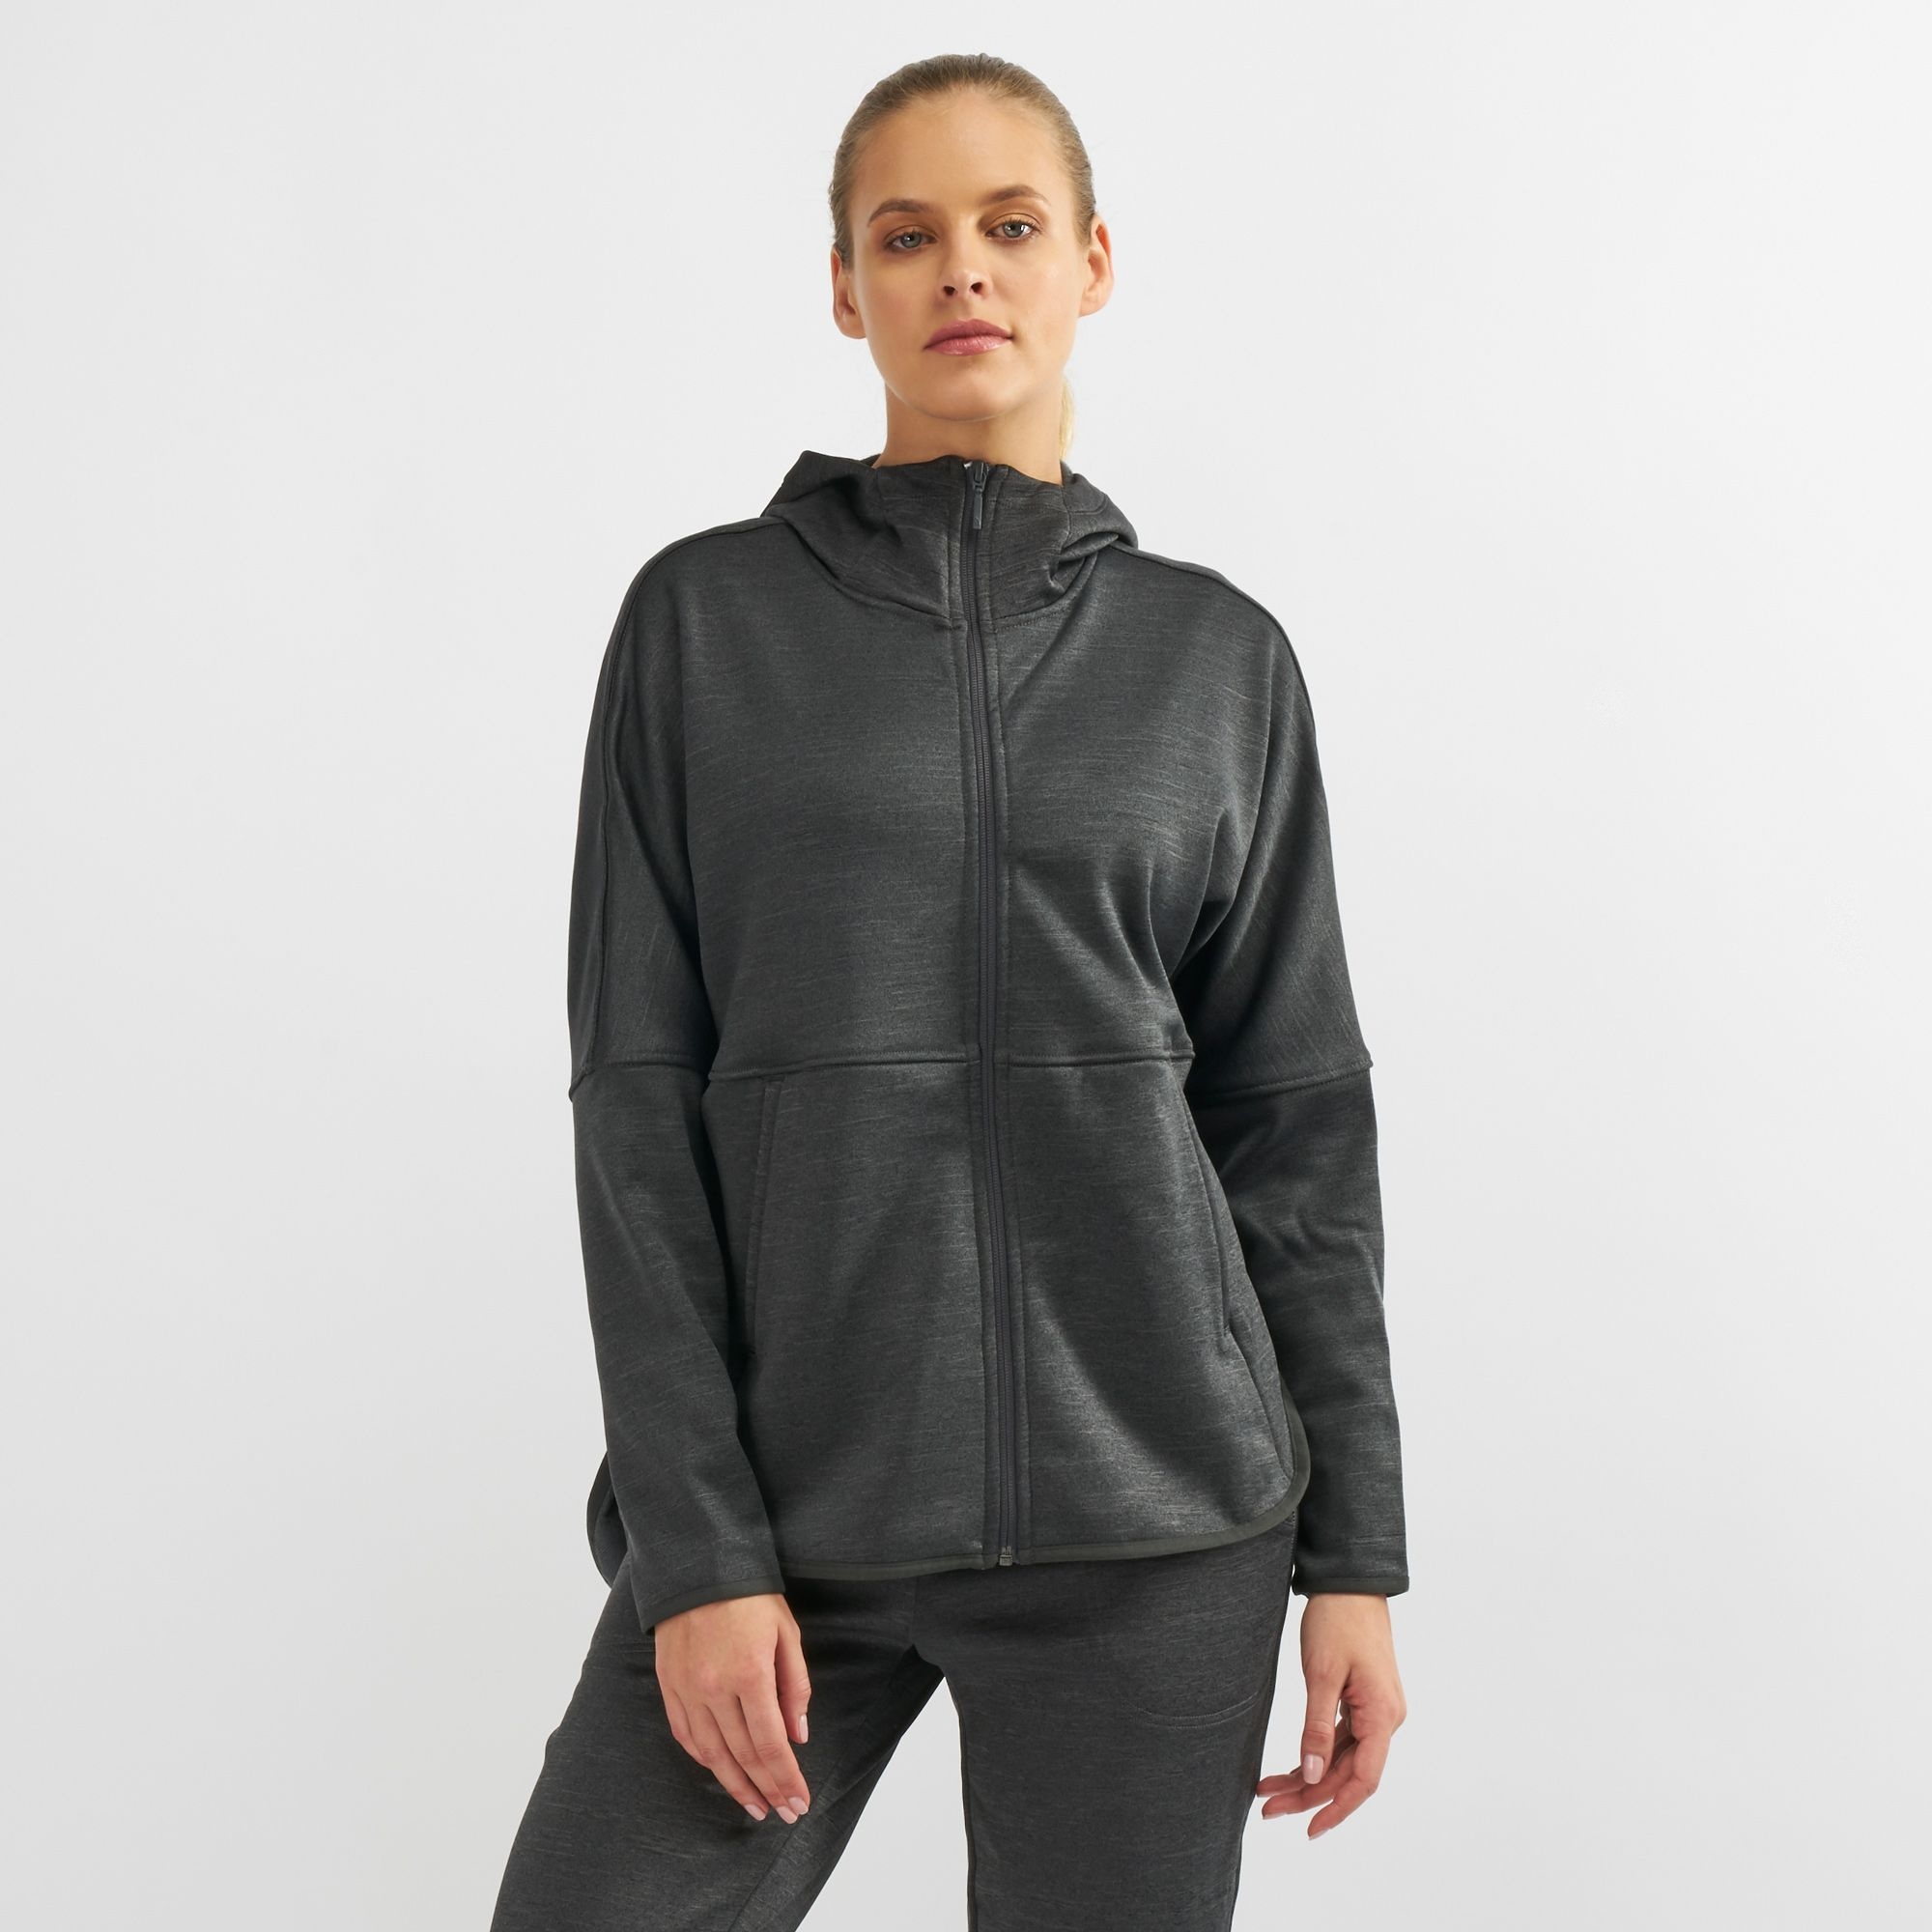 95e497e7d The North Face Cozy Slacker Full Zip Jacket | Fleece Jackets ...